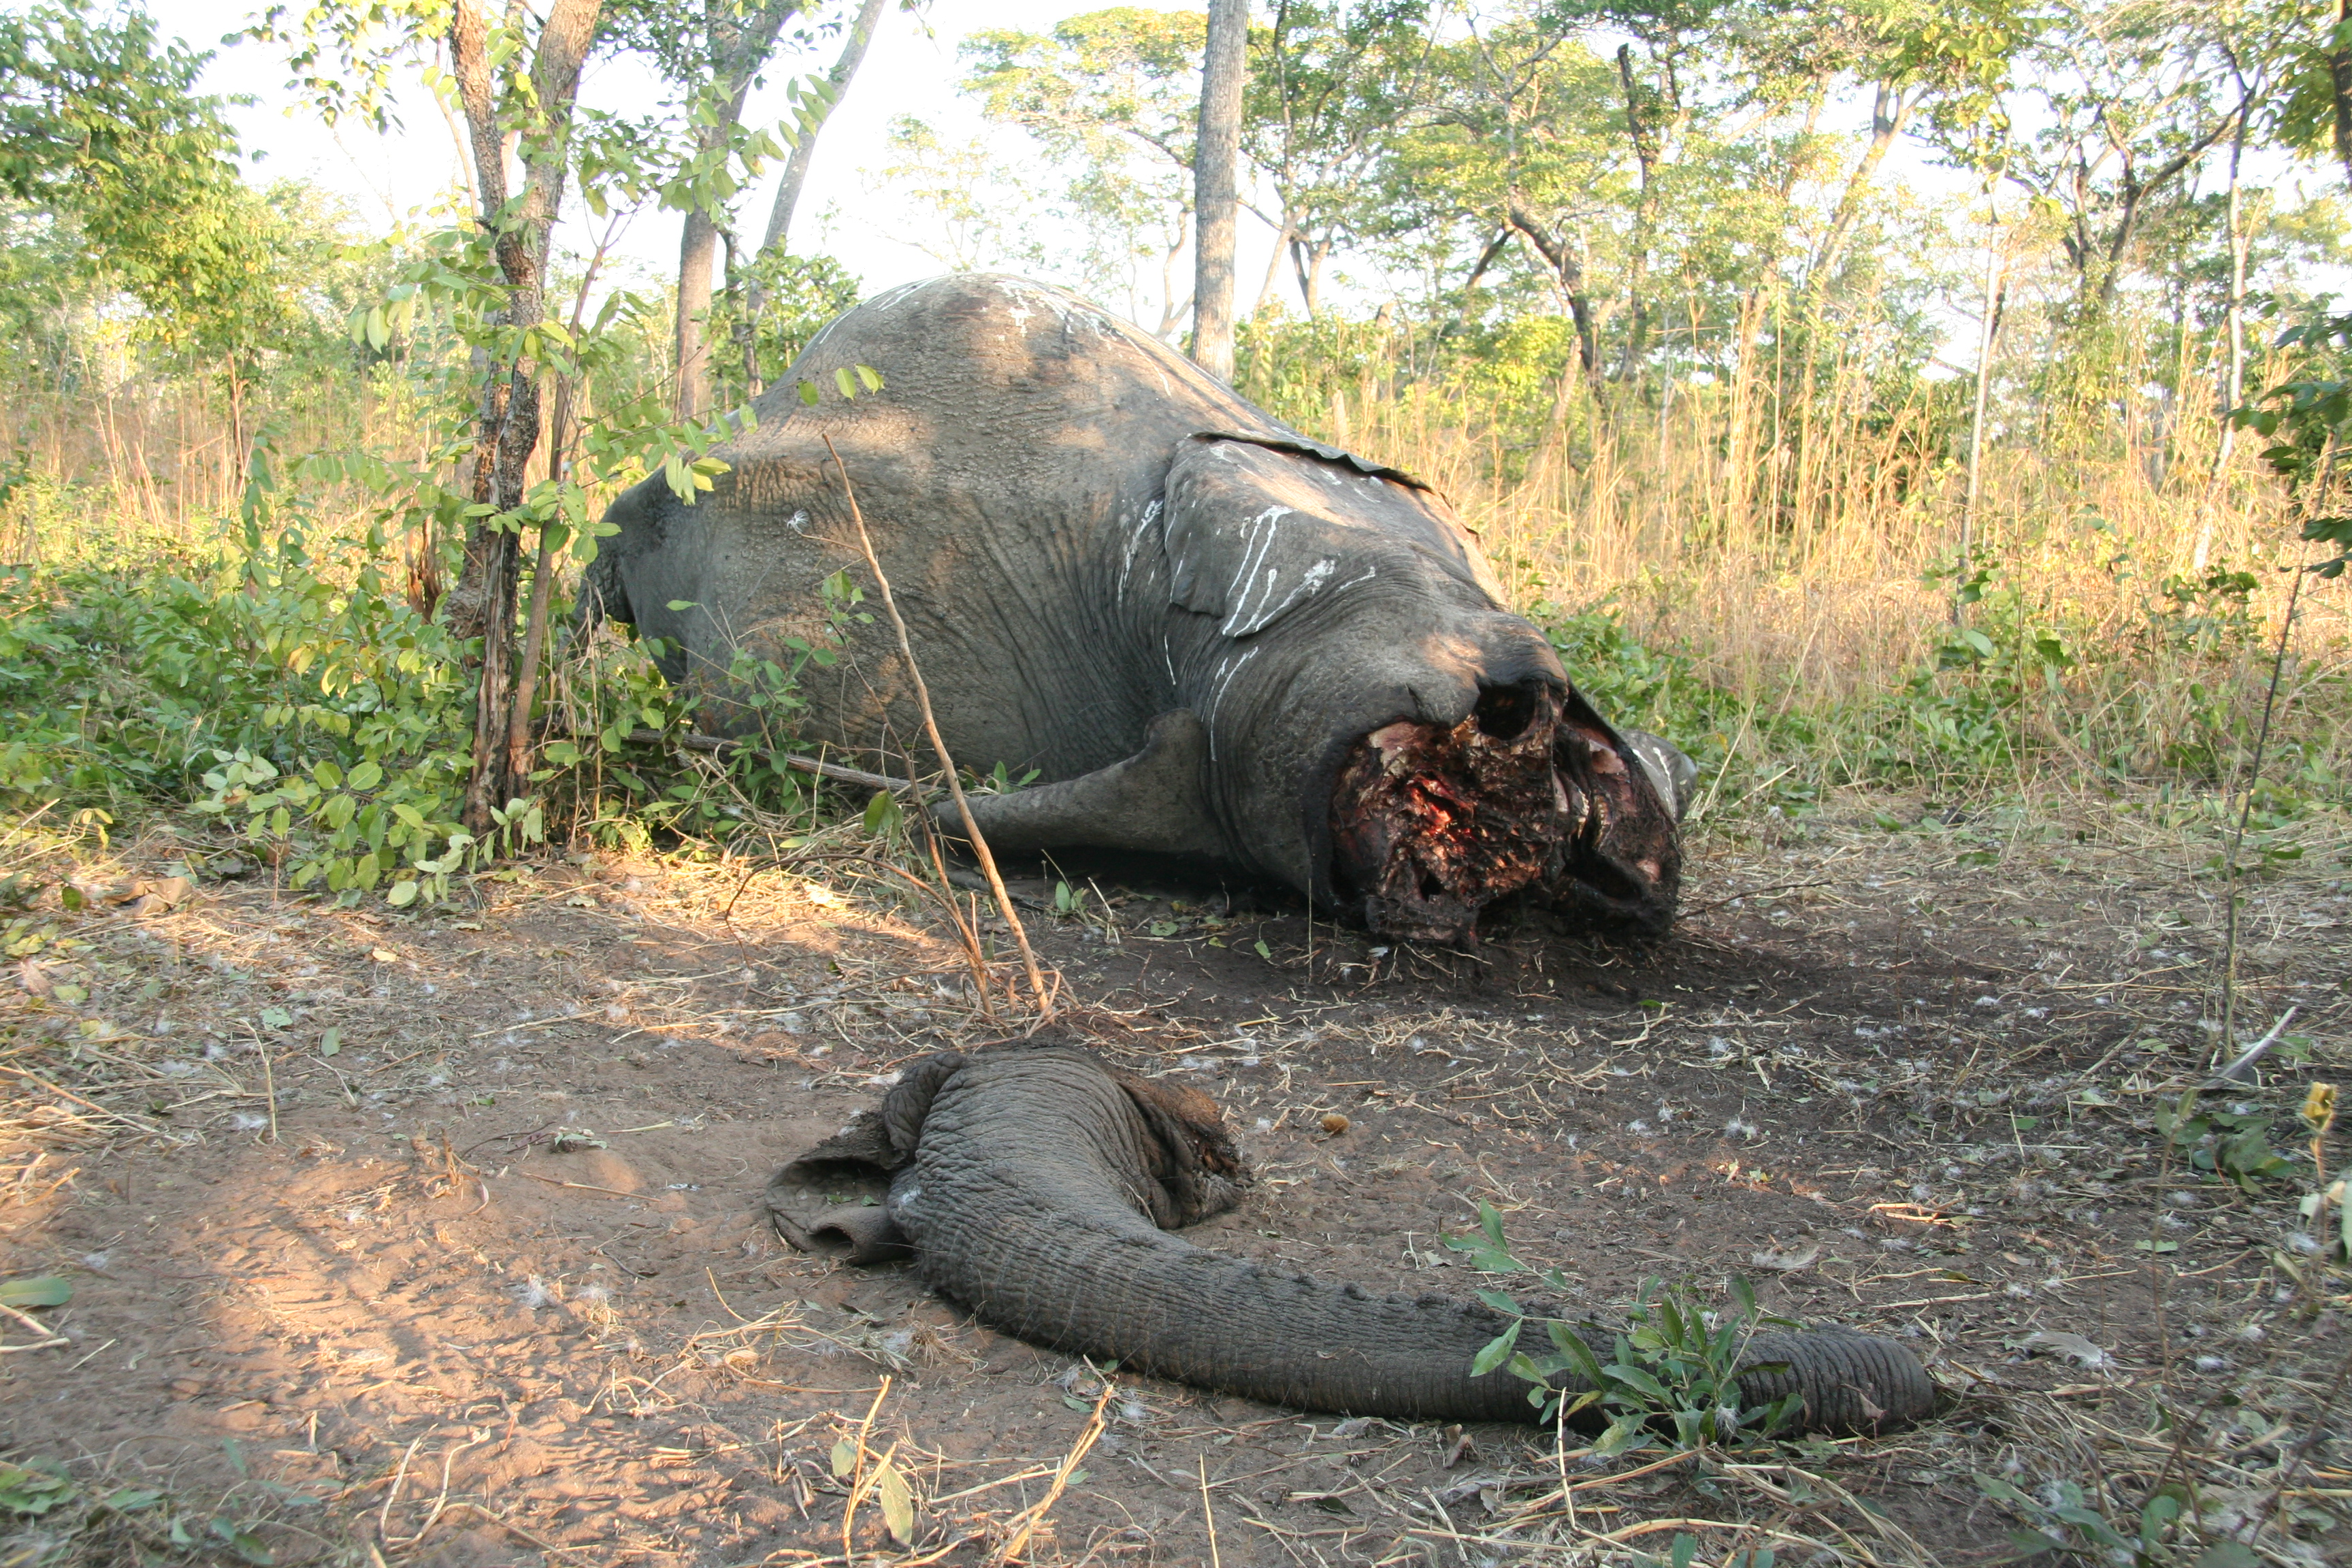 elephant poaching The recent capture of a notorious poacher has given hope to officials in chad battling to save the african elephant from extinction accessibility navigation primary the race to stop africa's elephant poachers the janjaweed financed their operations partly by poaching elephants in.